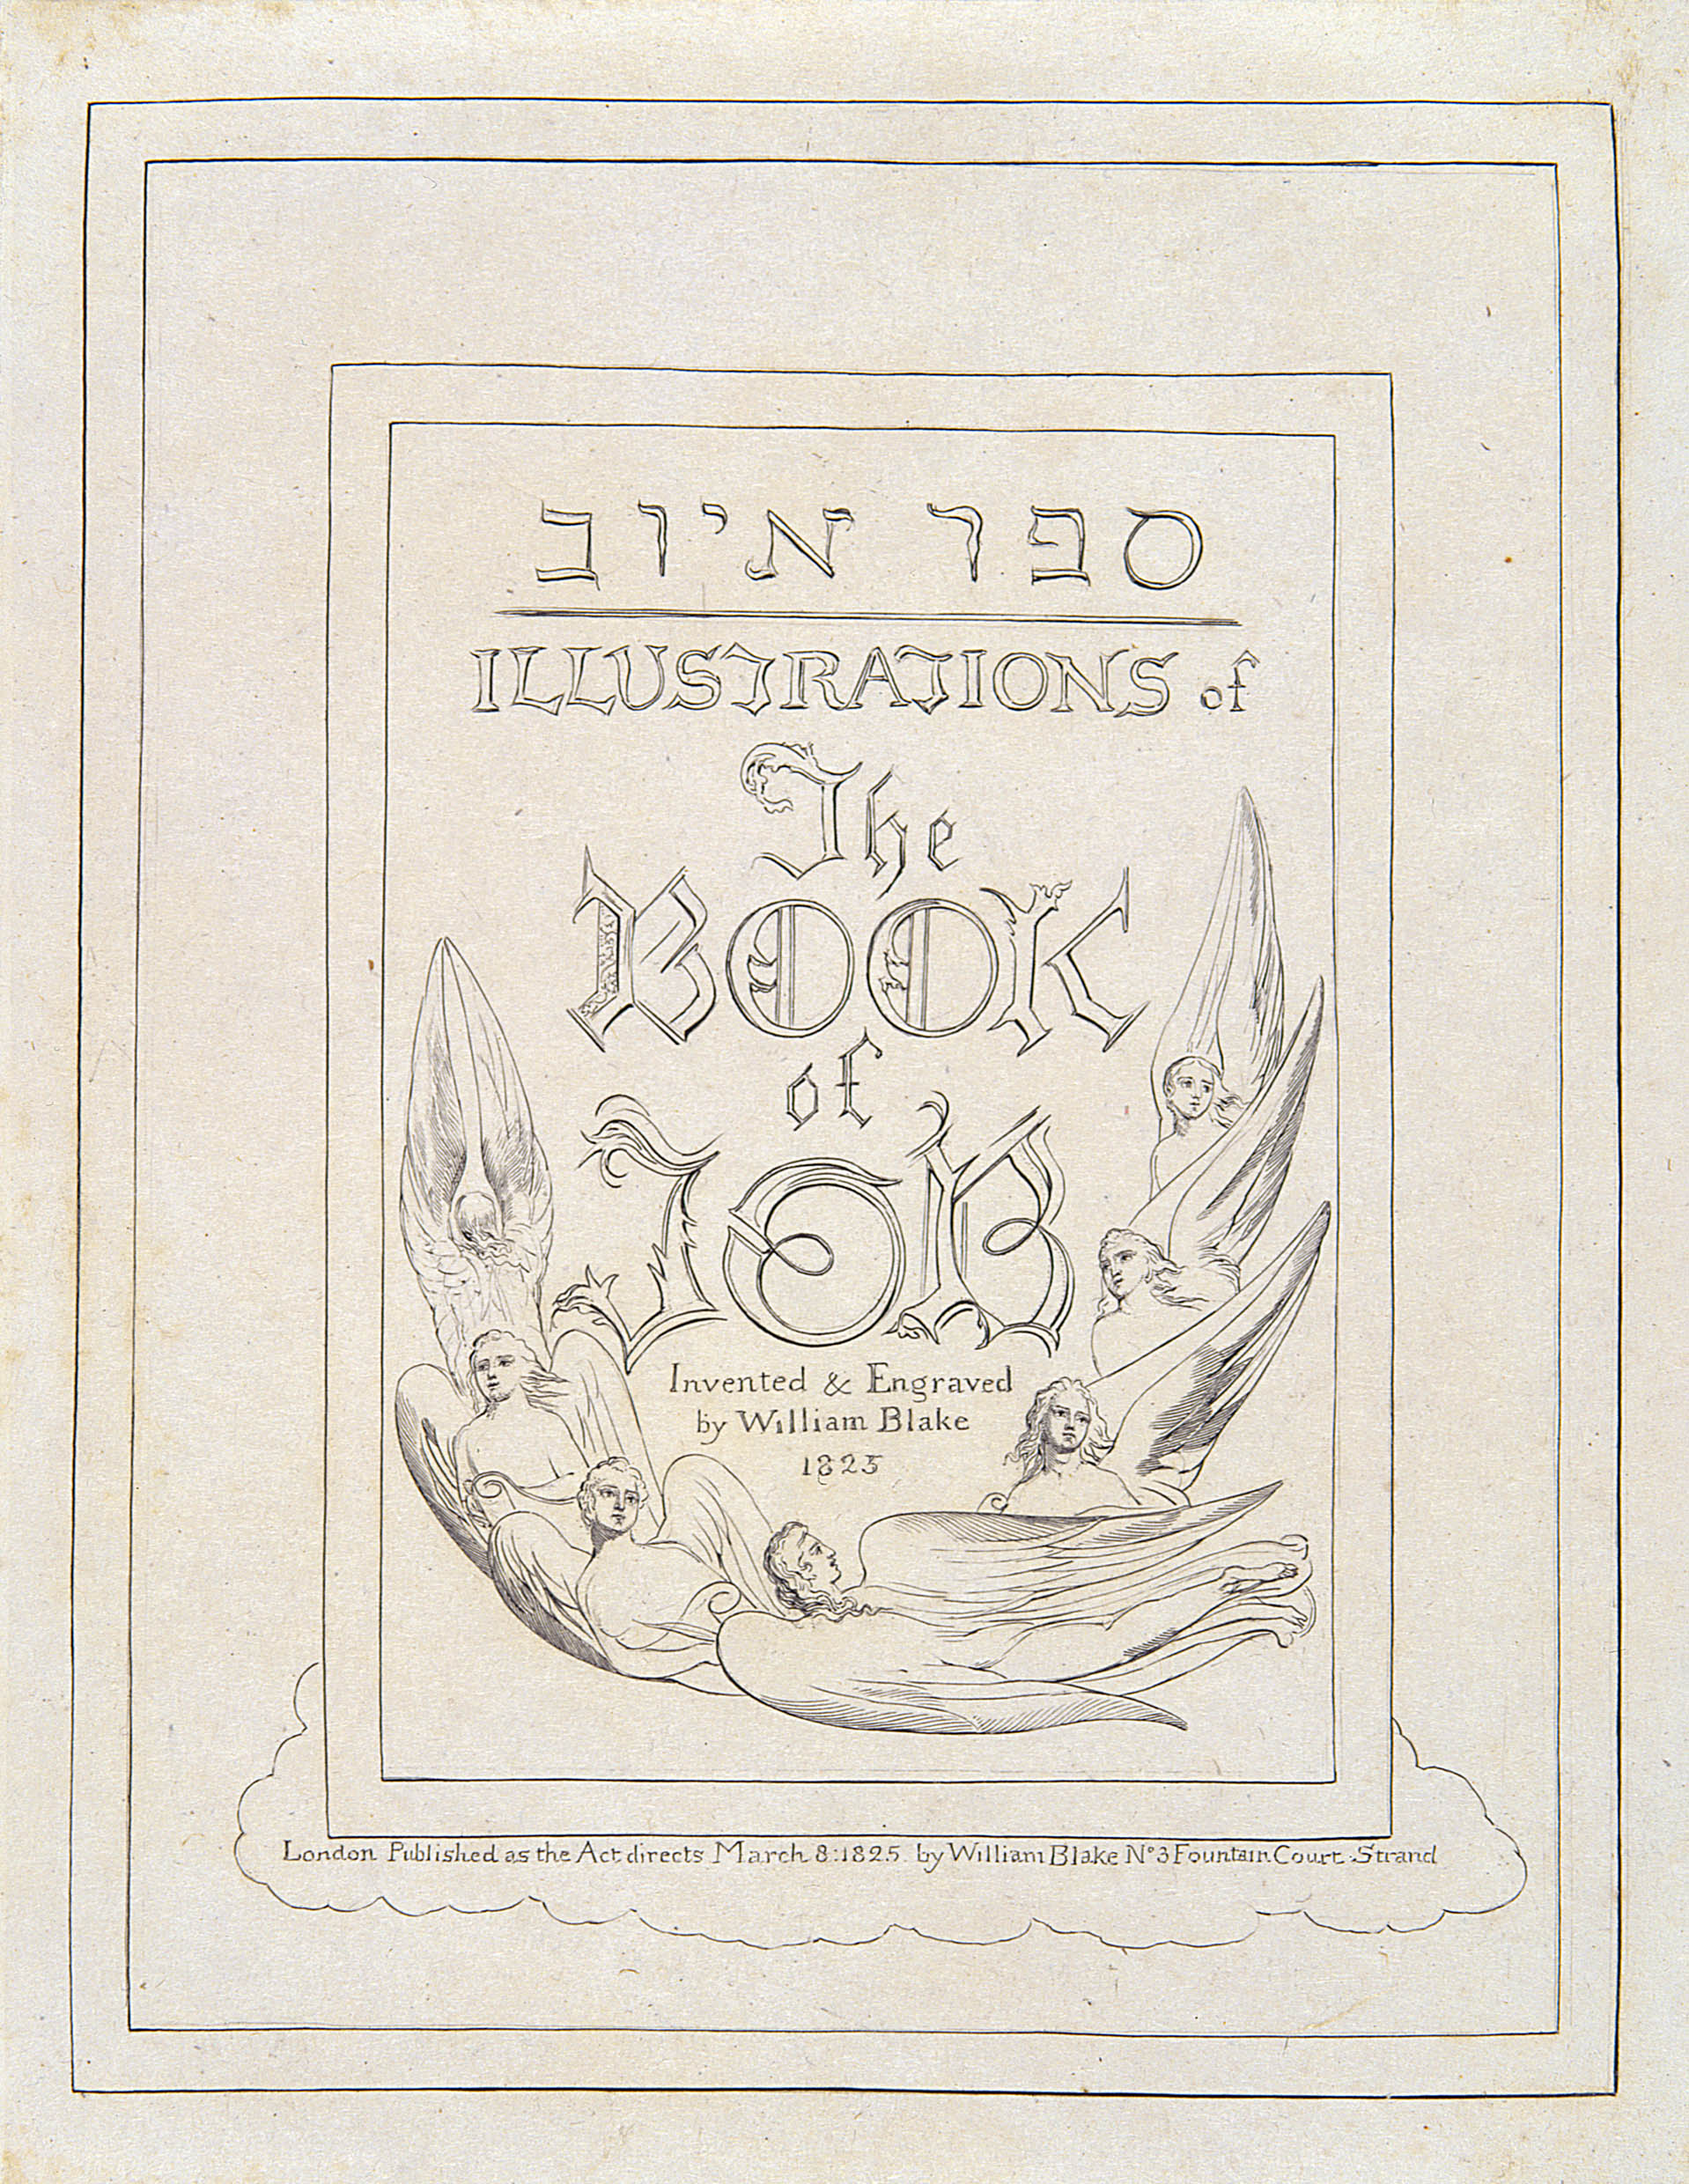 ספר איוב 	ILLUSTRATIONS of 	The 	BOOK 	of 	JOB 	Invented & Engraved 	by William Blake 	1825 	London Published as the Act directs March 8: 1825. by William Blake No3 Fountain Court Strand